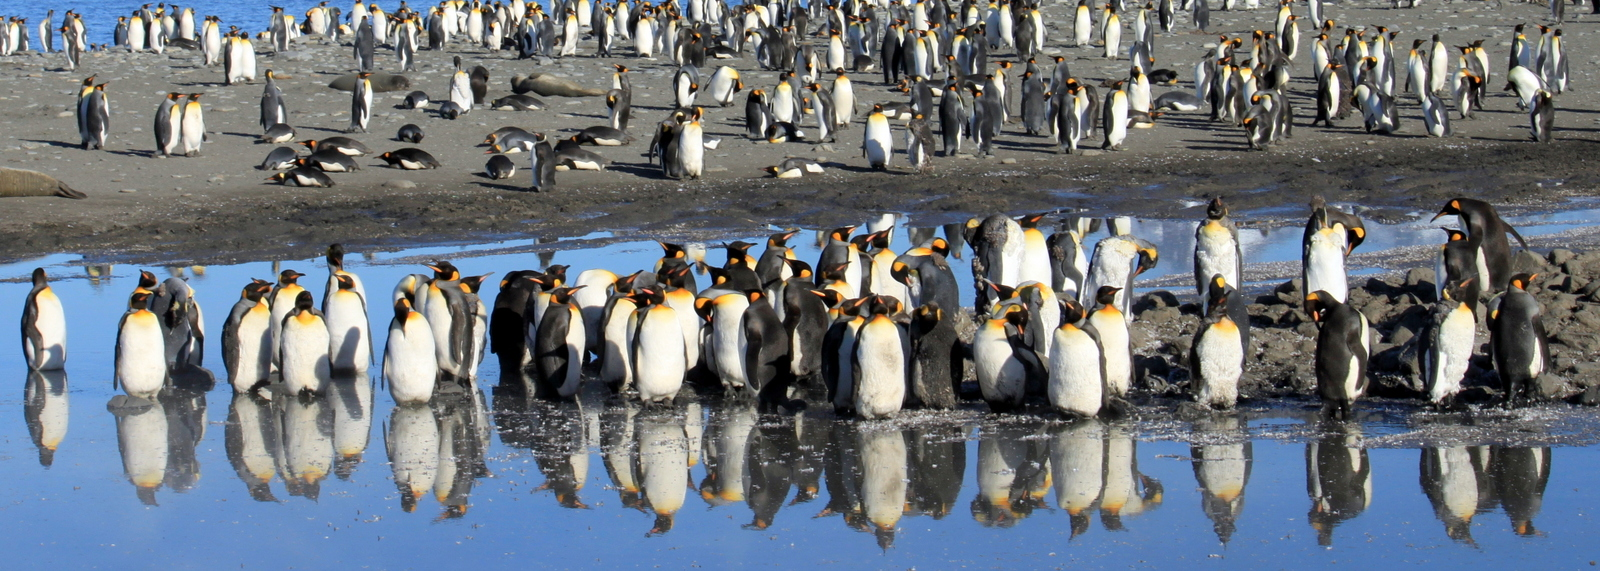 South Georgia, St Andrews Bay, King Penguins